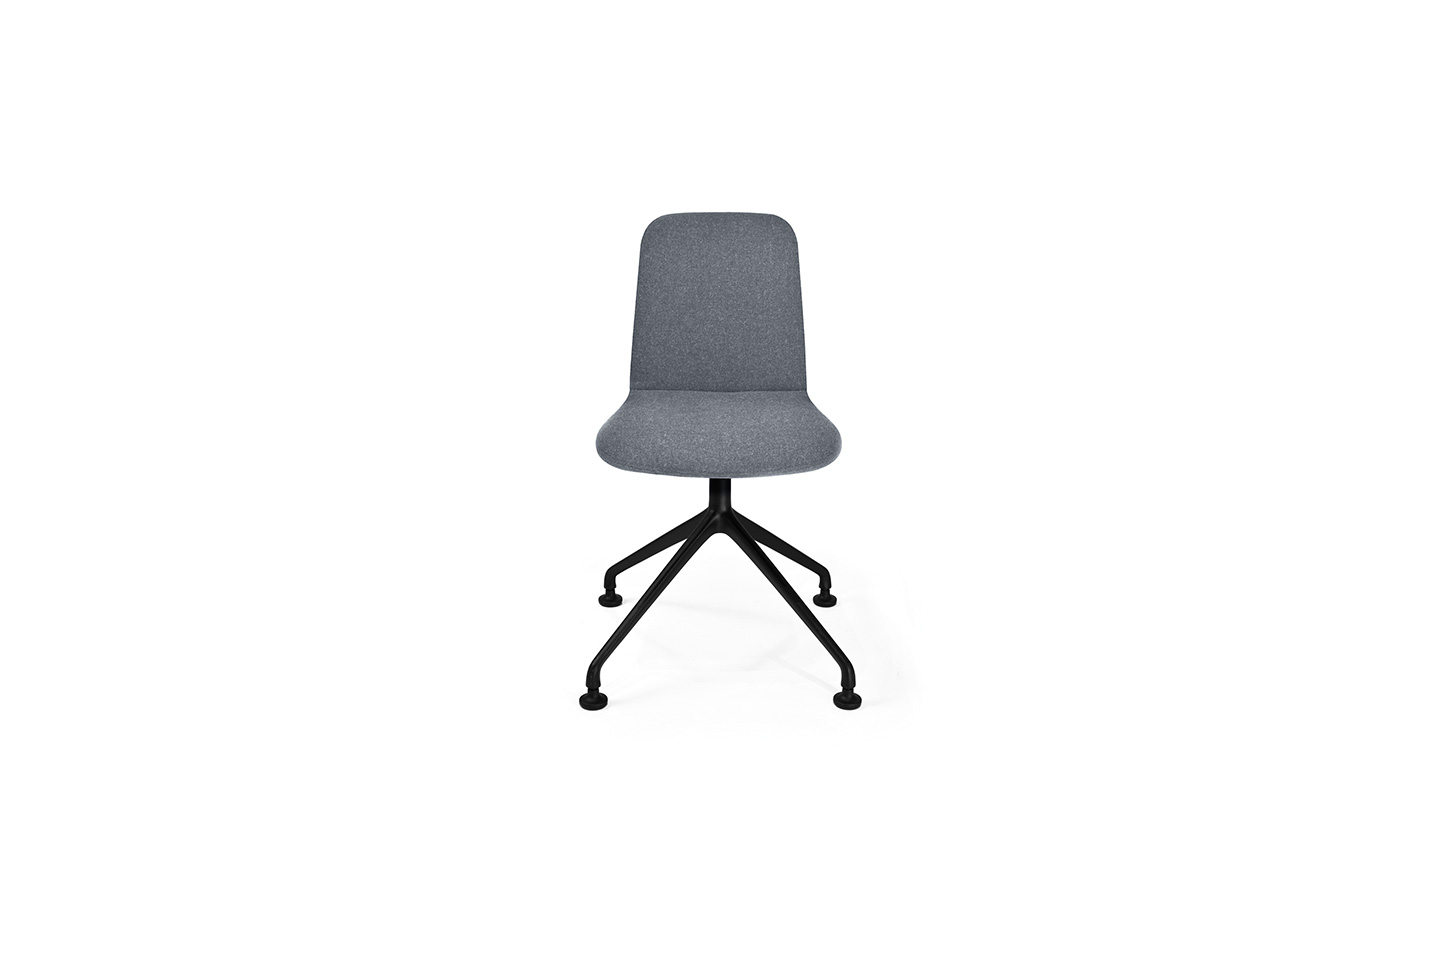 THIN Chair - Swiveling Starbase - Upholstered